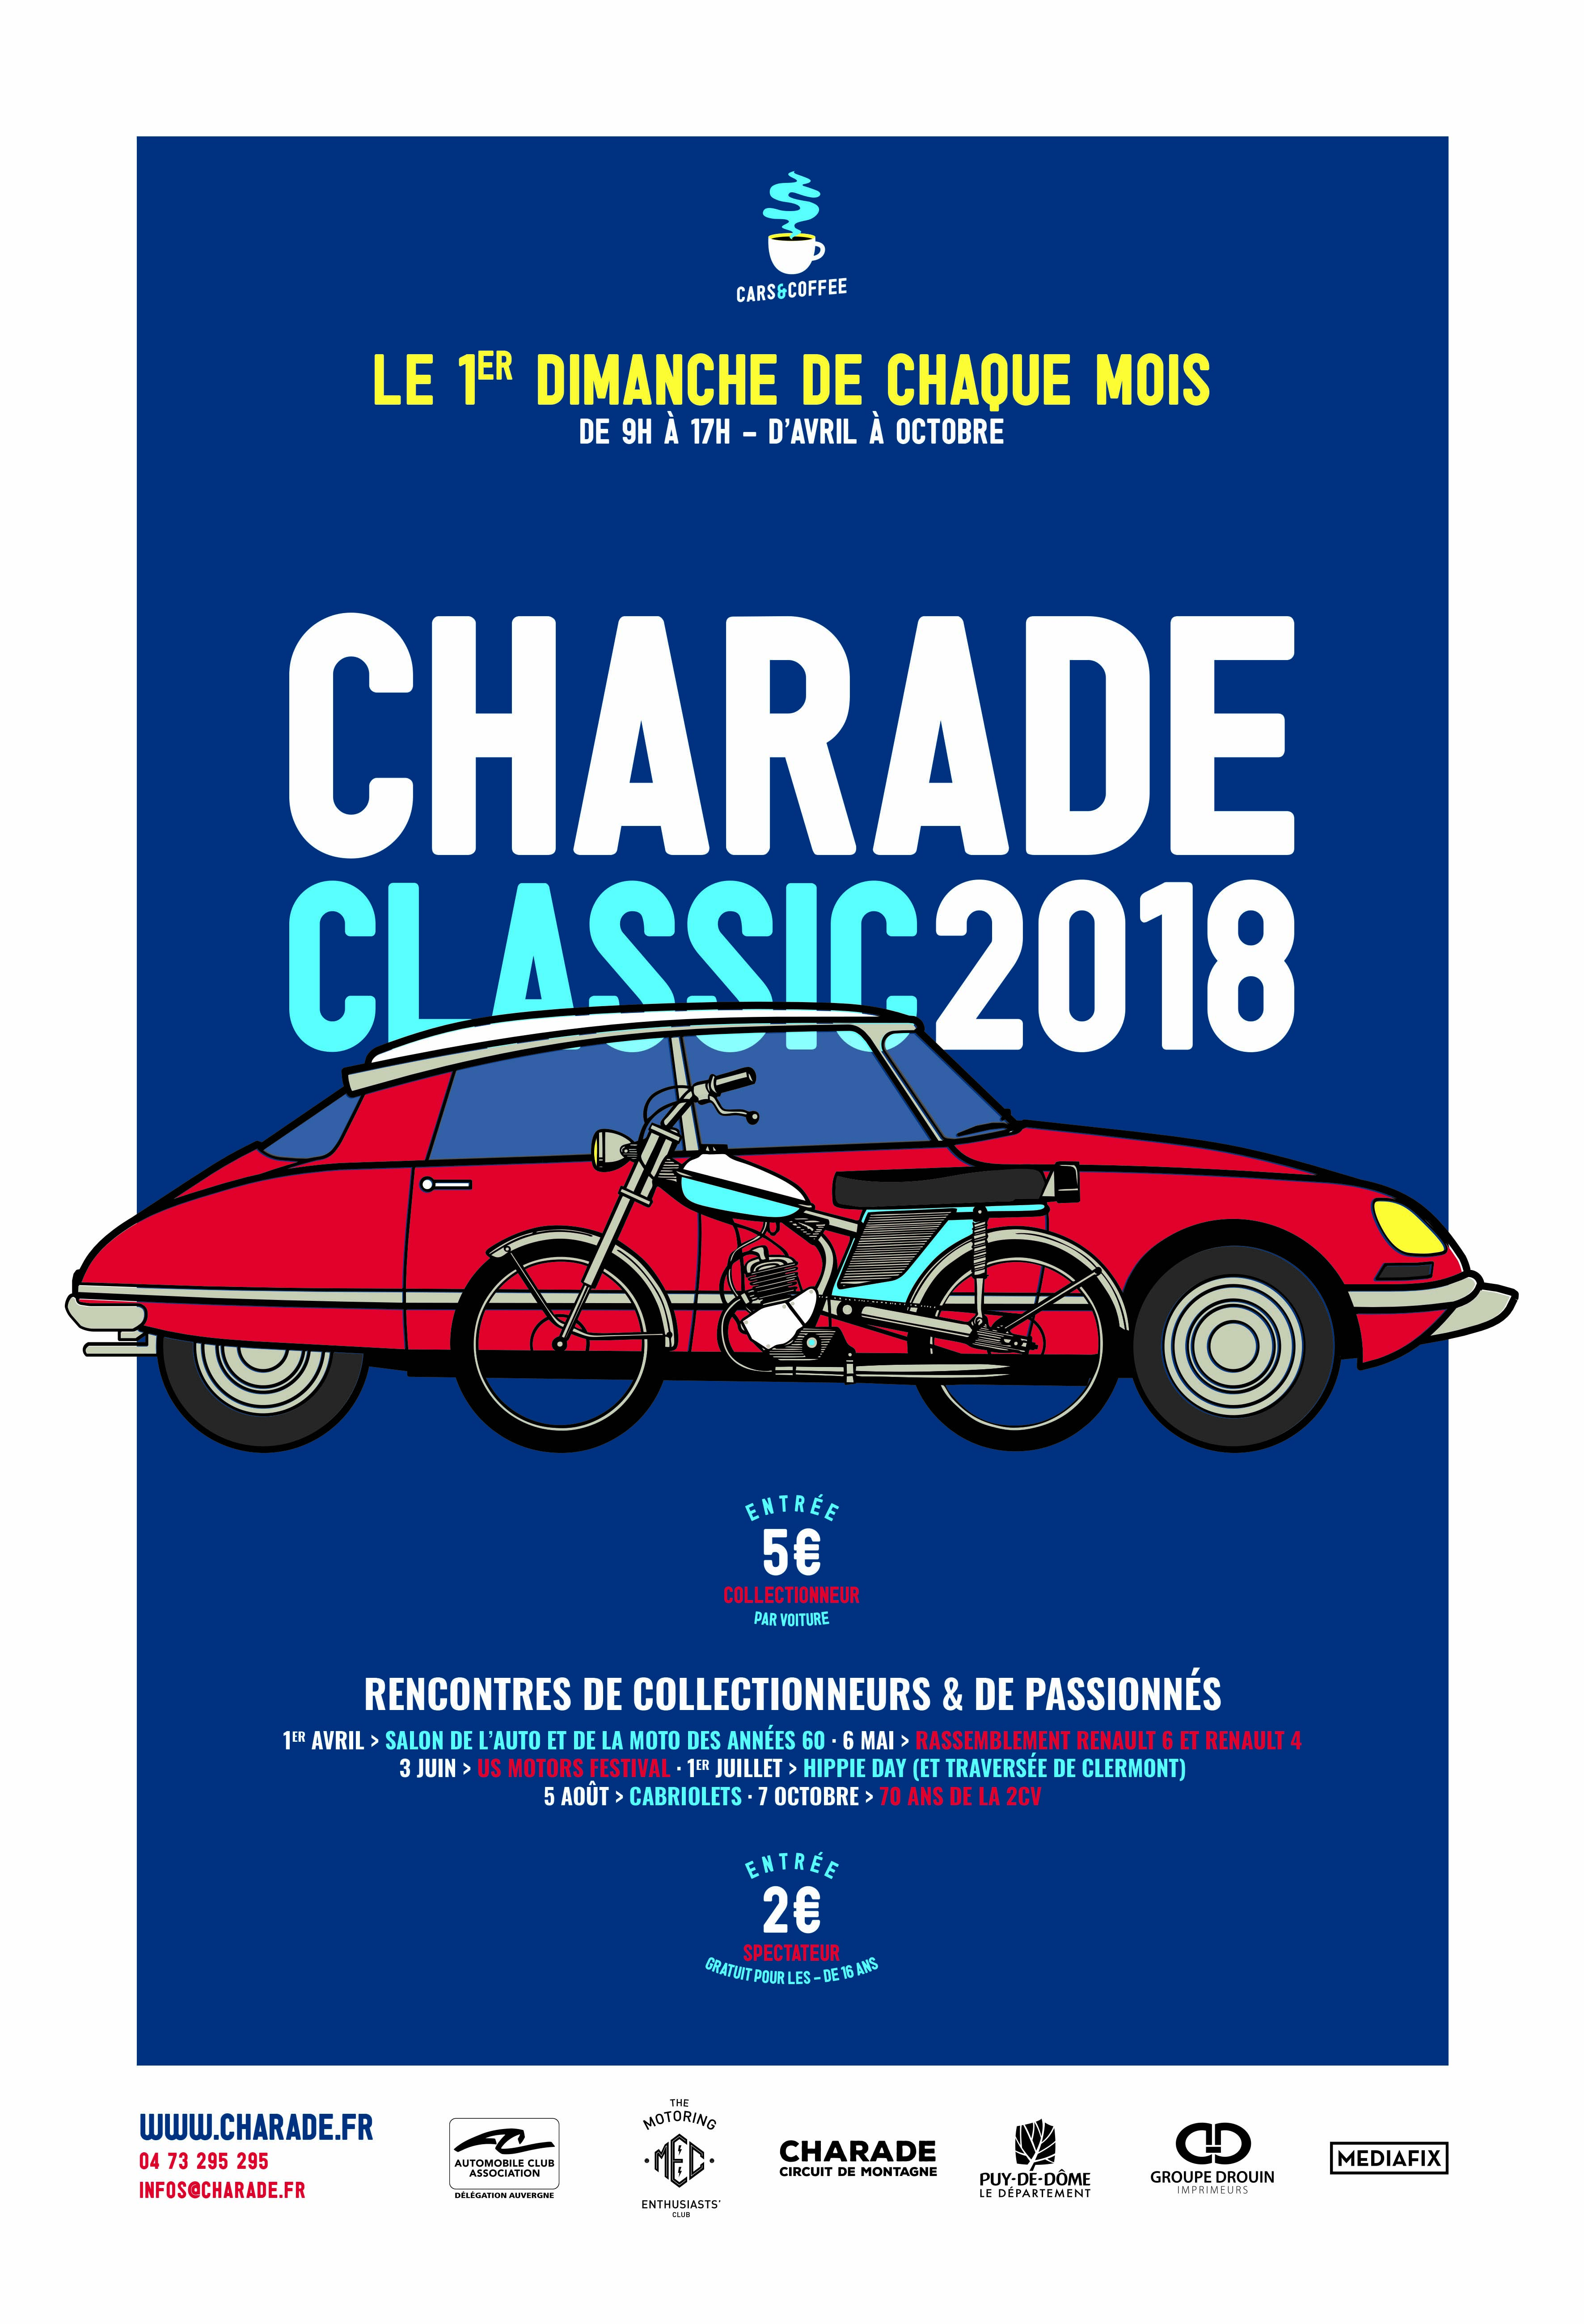 Charade Classic